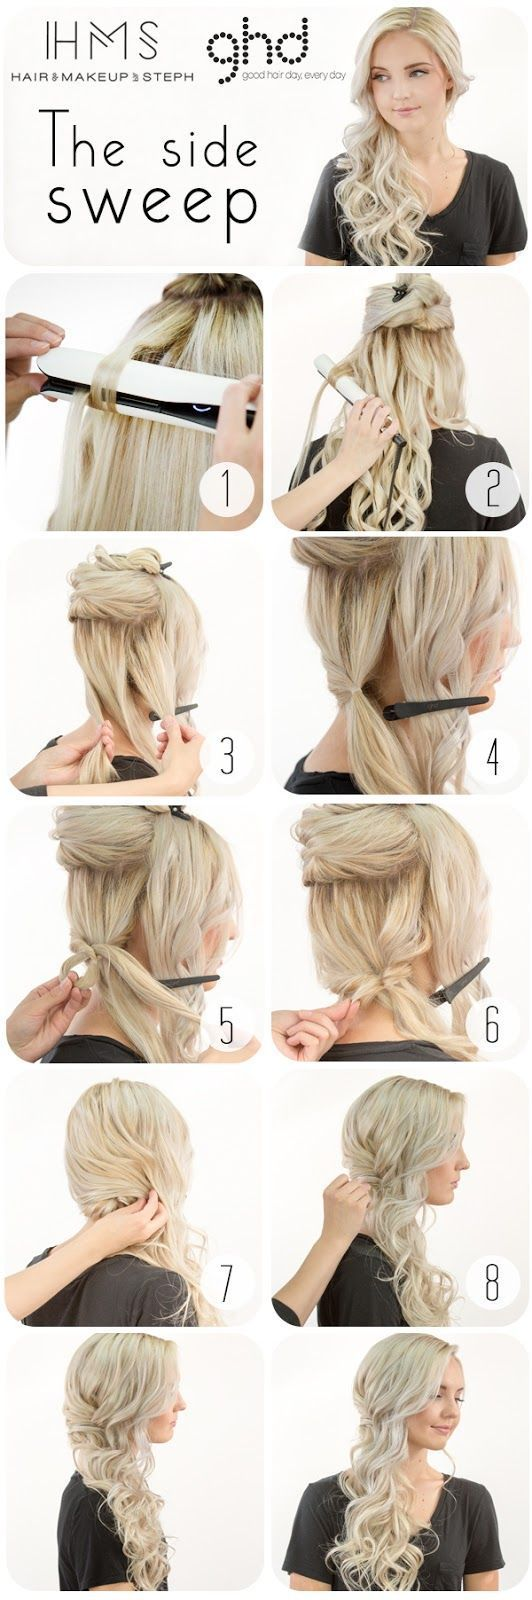 wedding hairstyles to the side best photos - Page 3 of 4 | Wedding ...